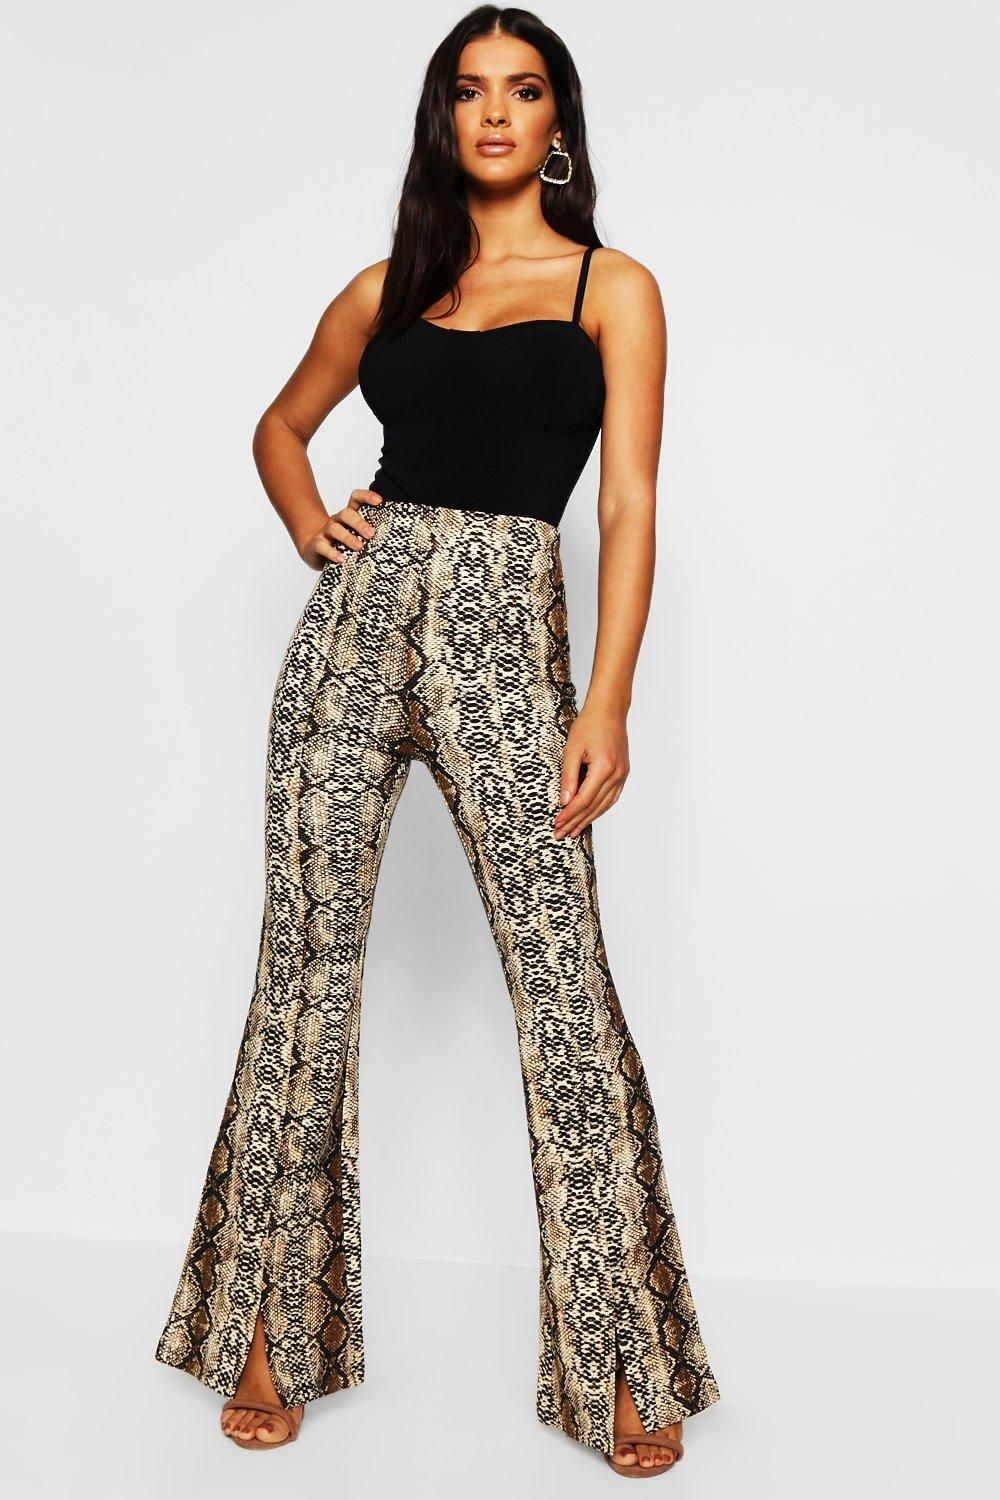 62f07655db8f0 Trousers are a more sophisticated alternative to skinnies Trousers take on  a realxed silhouette for the